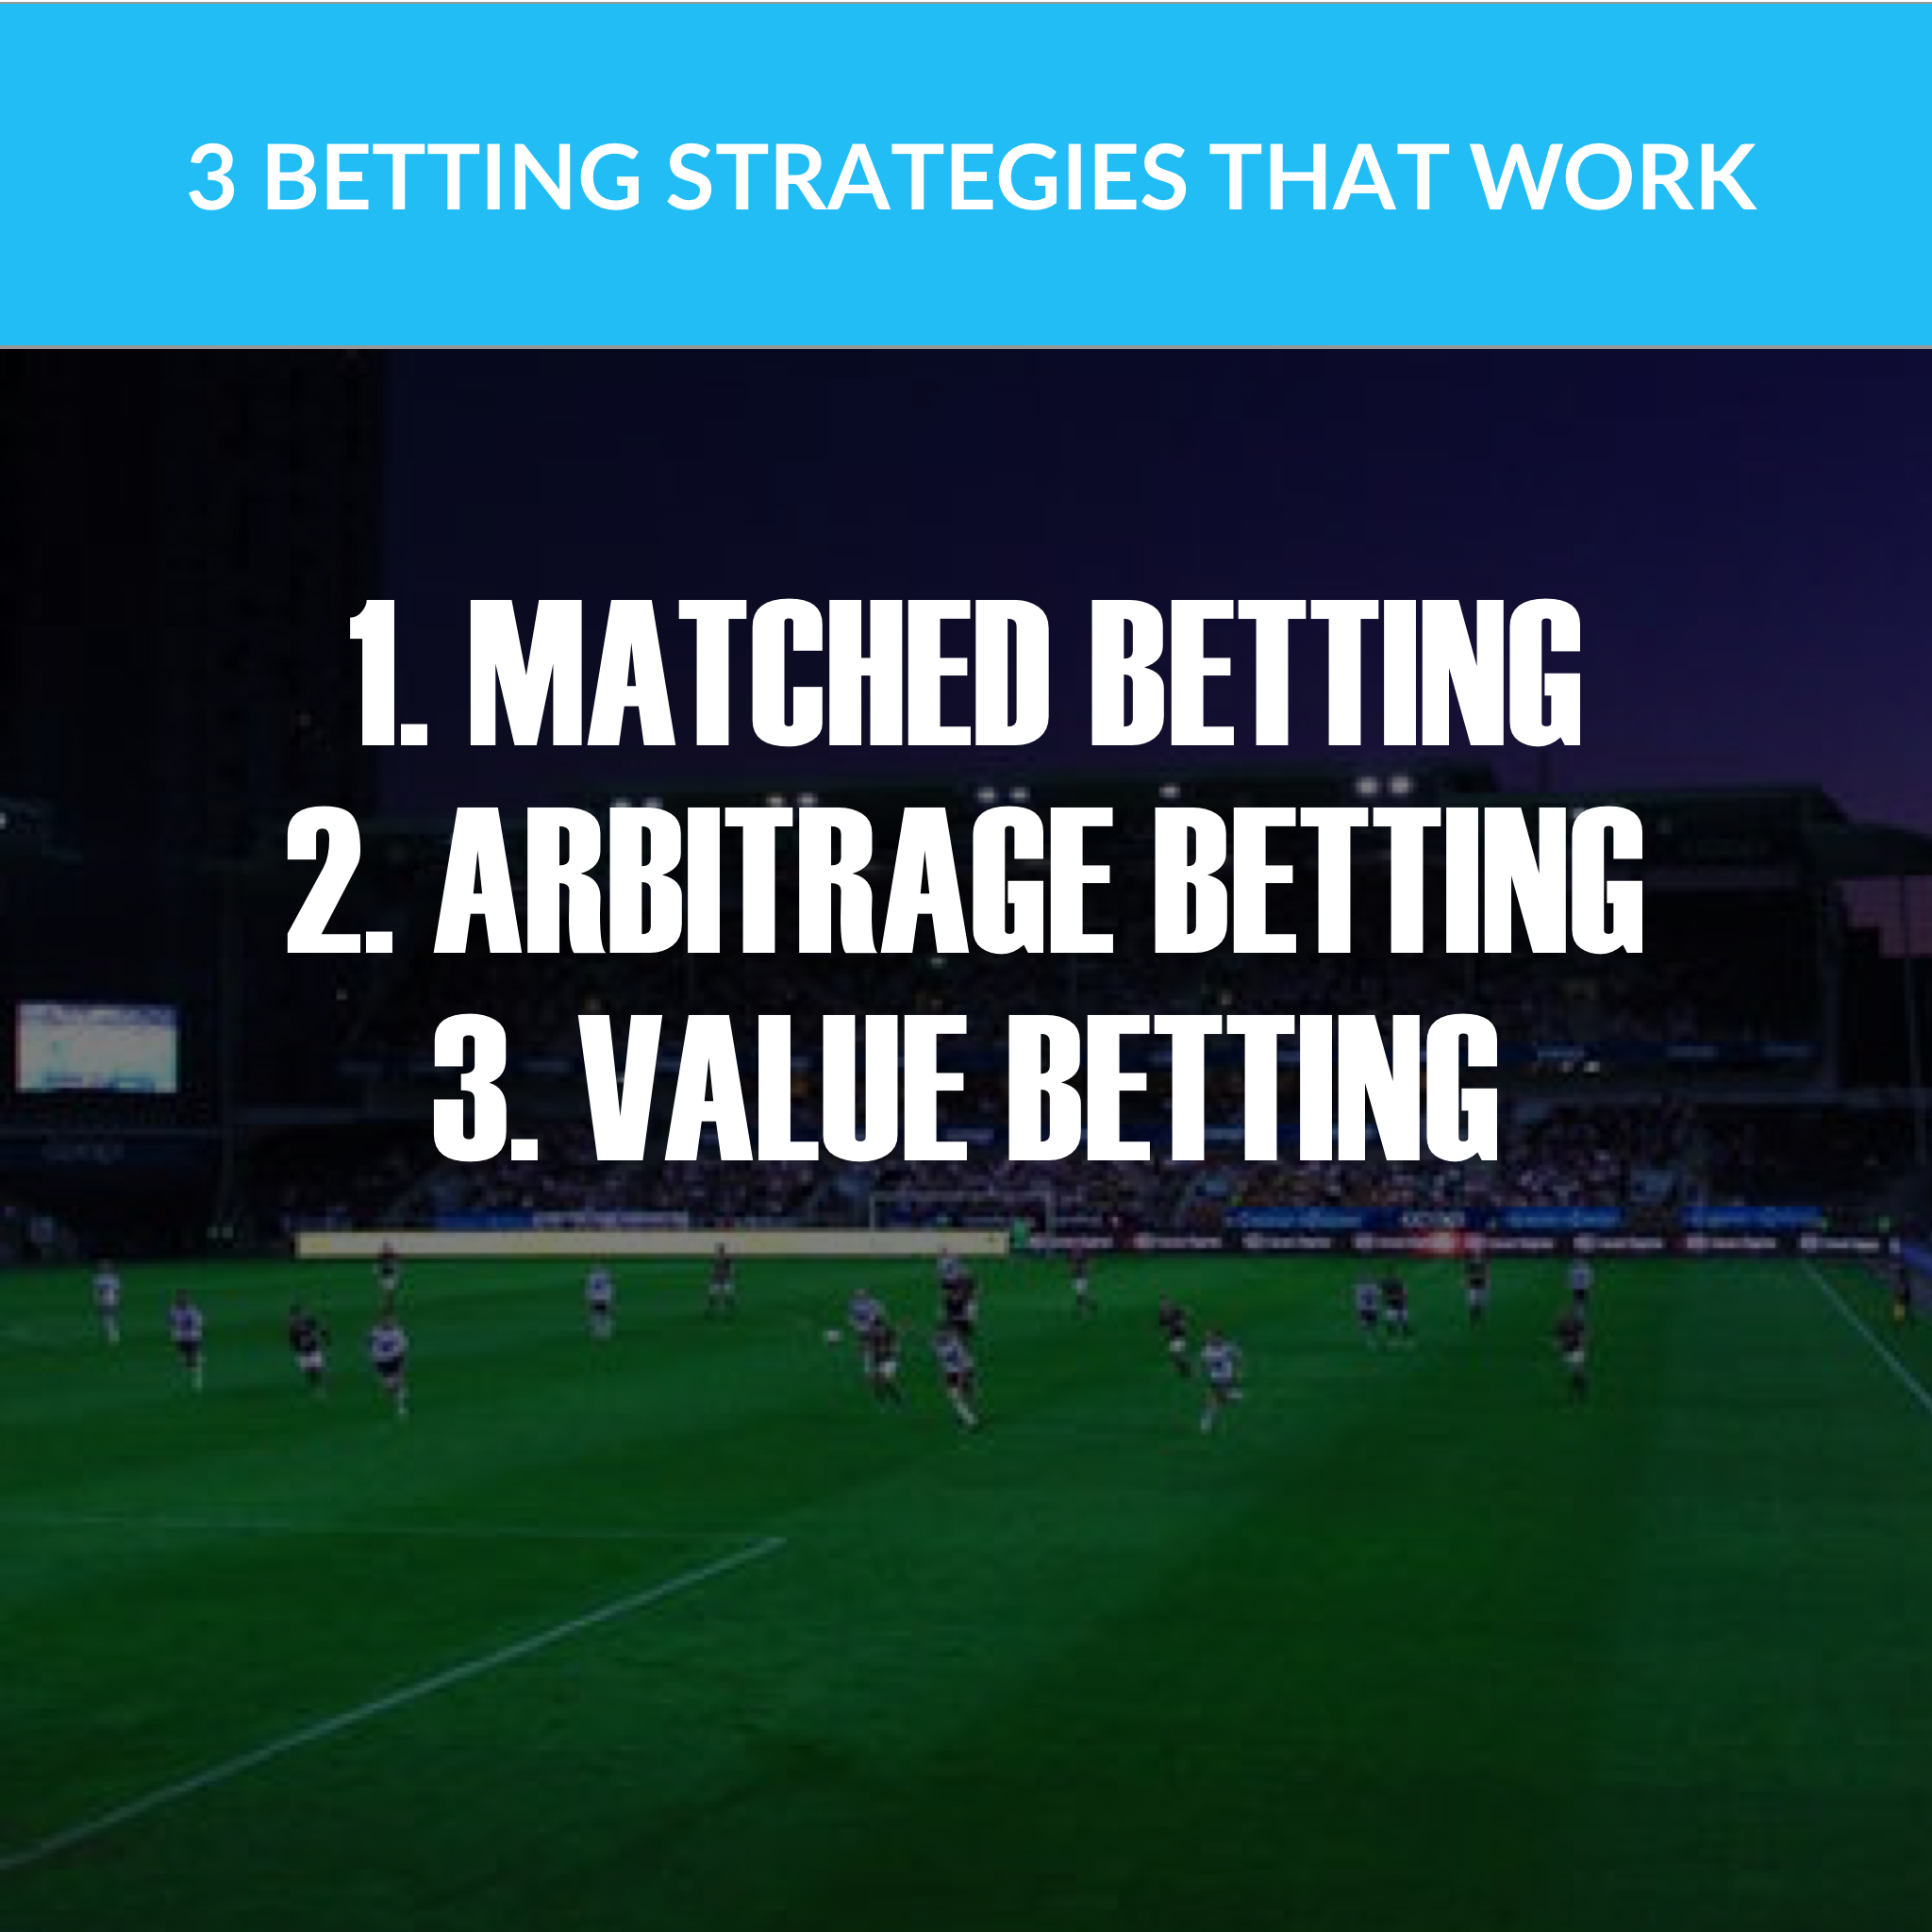 Arbitrage betting, matched betting and value betting. 3 Betting Strategies that actually make money.